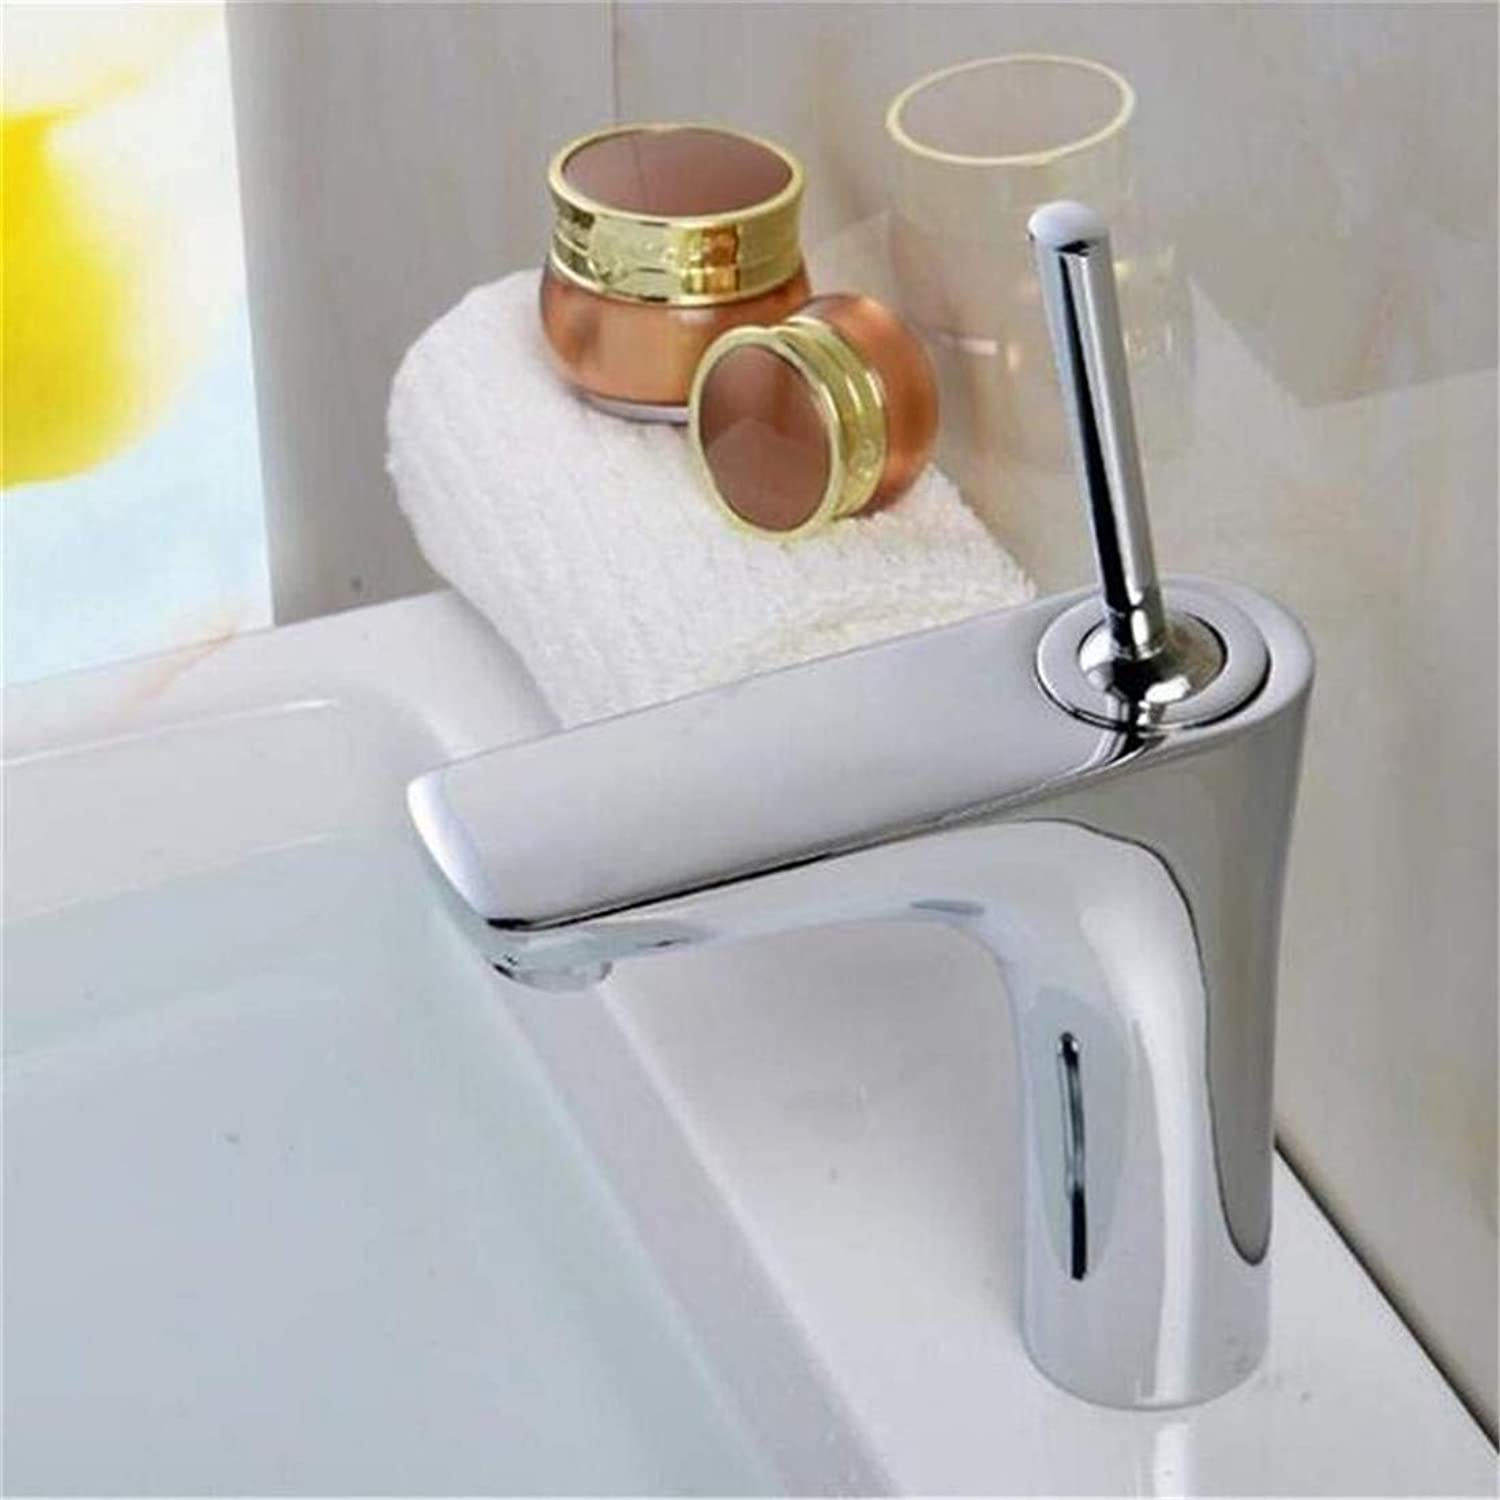 High Quality Vintage Stainless Steel Bathroom Sink Washbasin Counter Top Vanity Faucet Copper